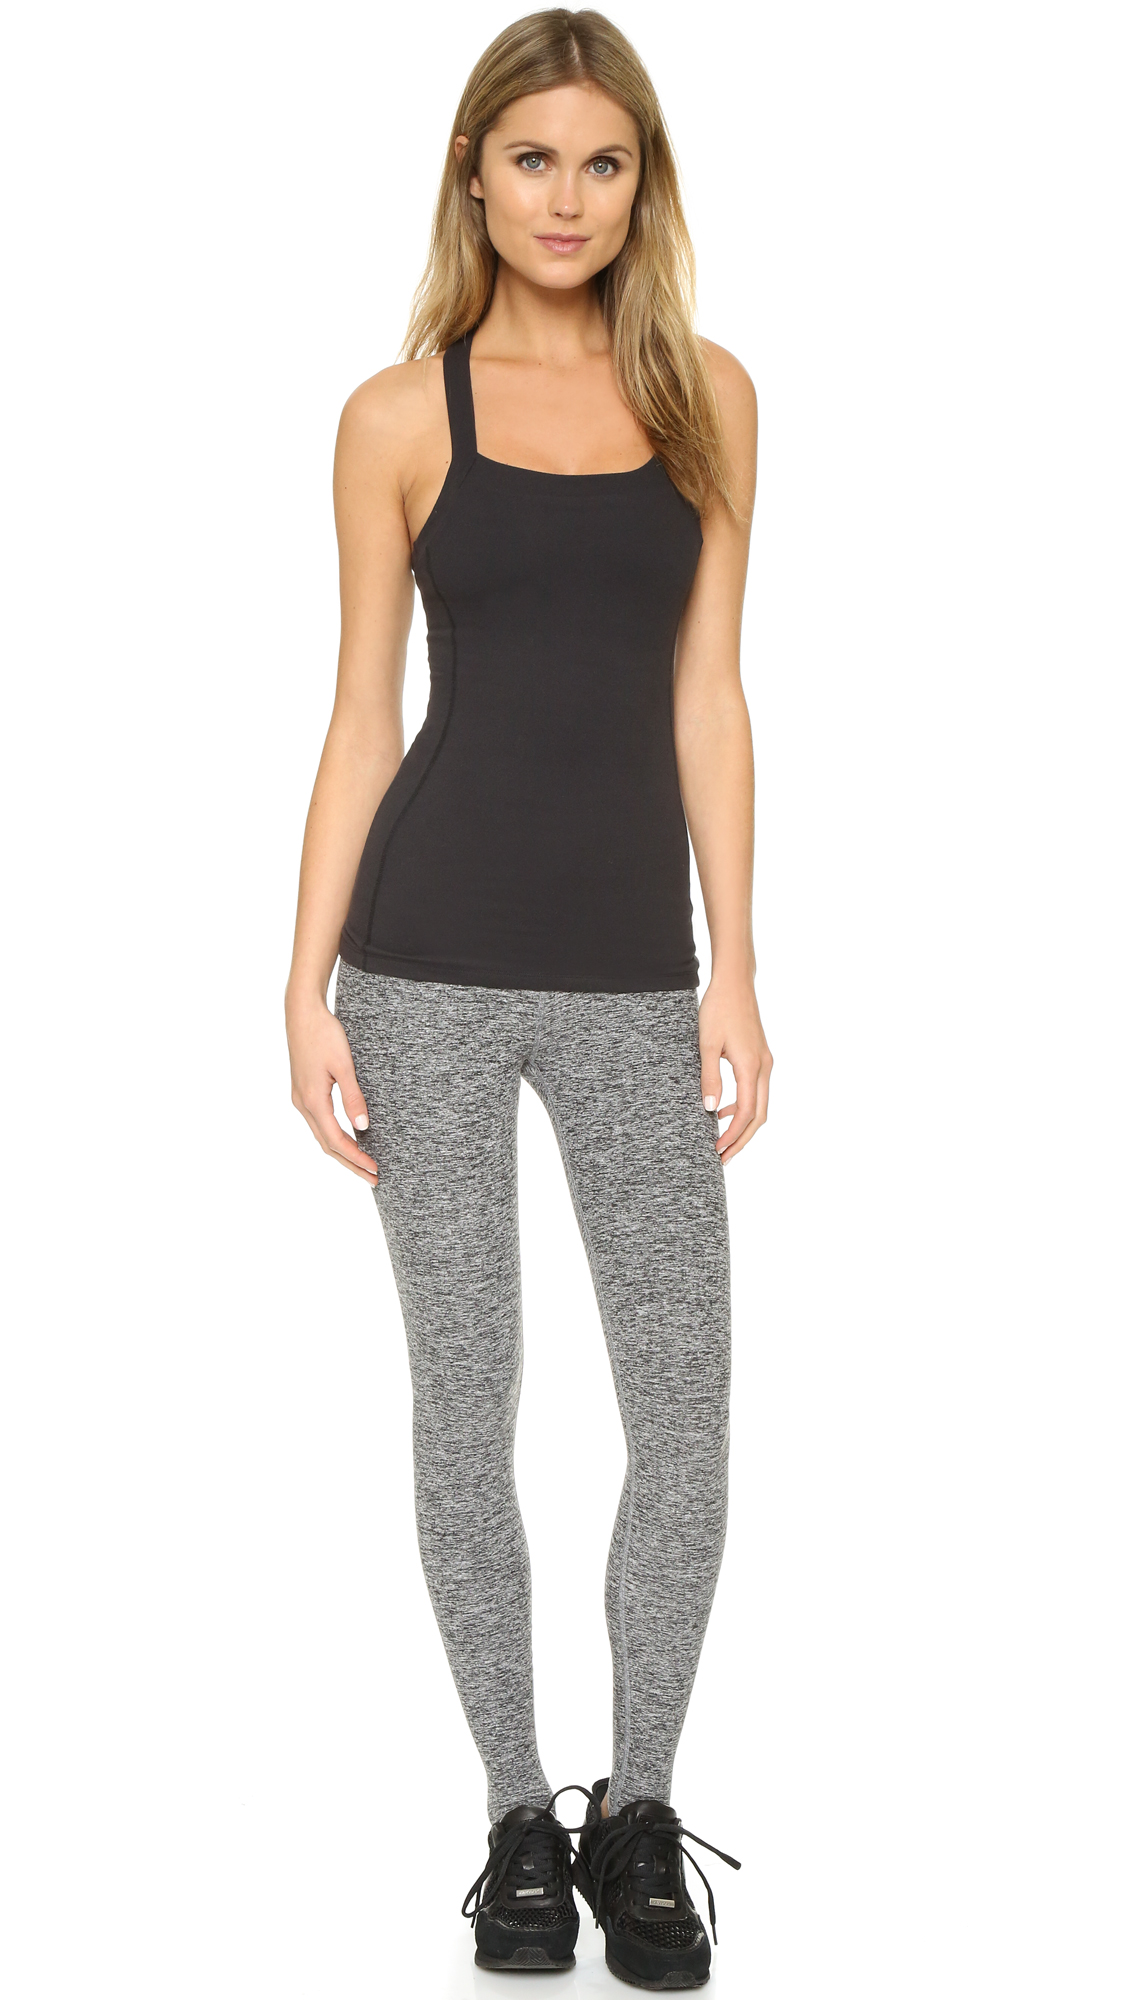 3a0e6e0cfe9b50 Beyond Yoga High Waist Stirrup Leggings | SHOPBOP